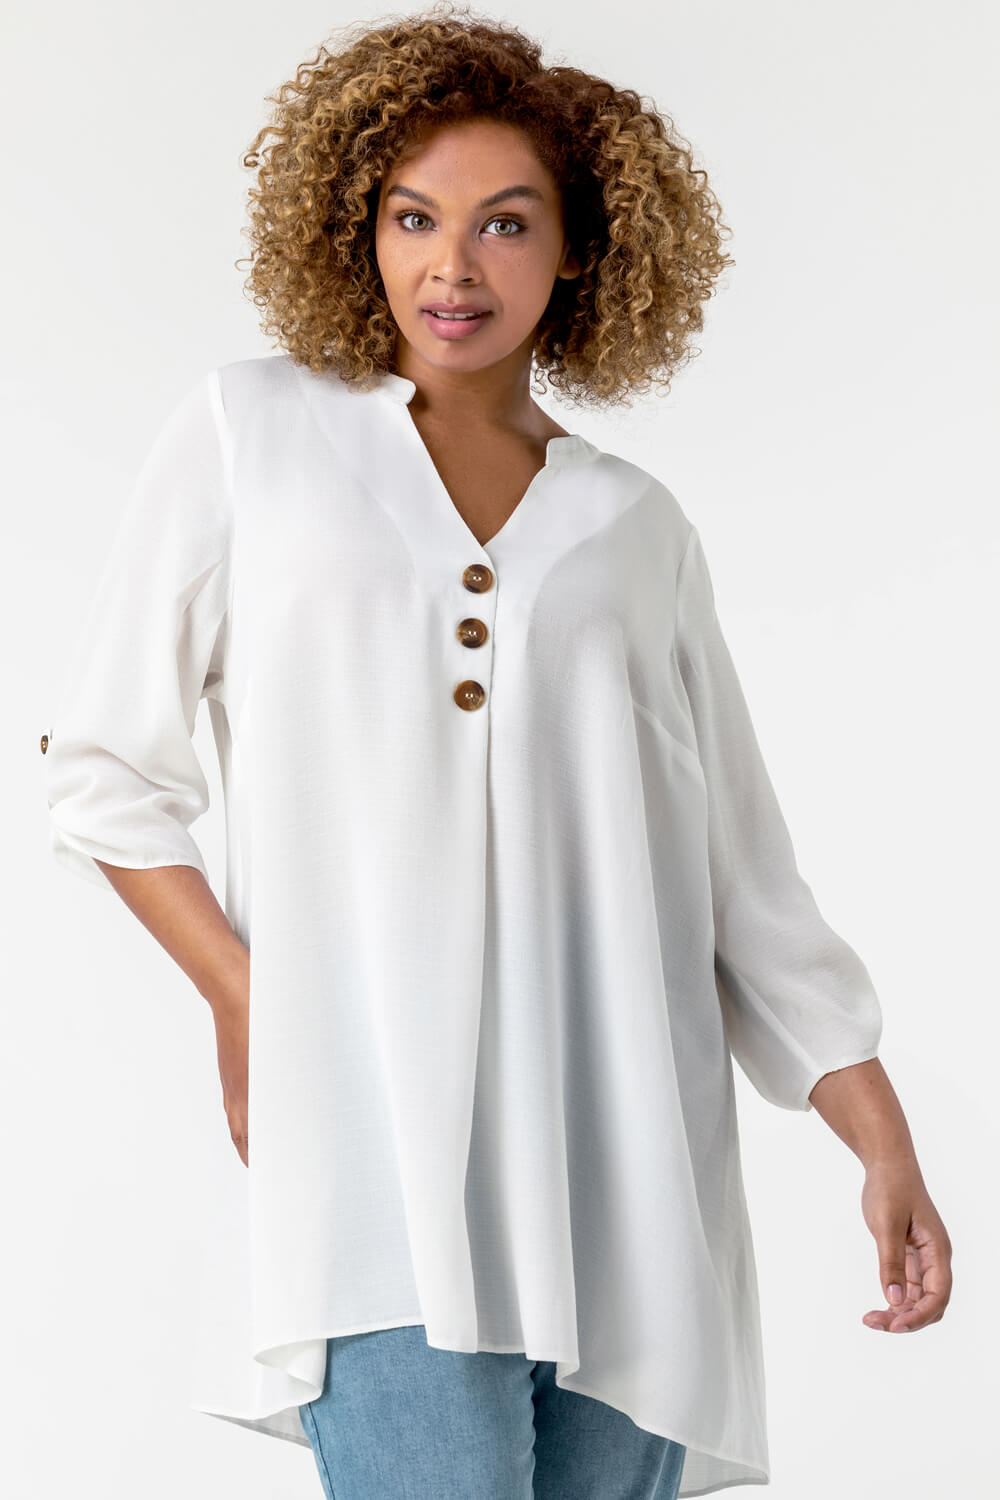 Roman Originals Curve Button Detail Tunic Top in Ivory